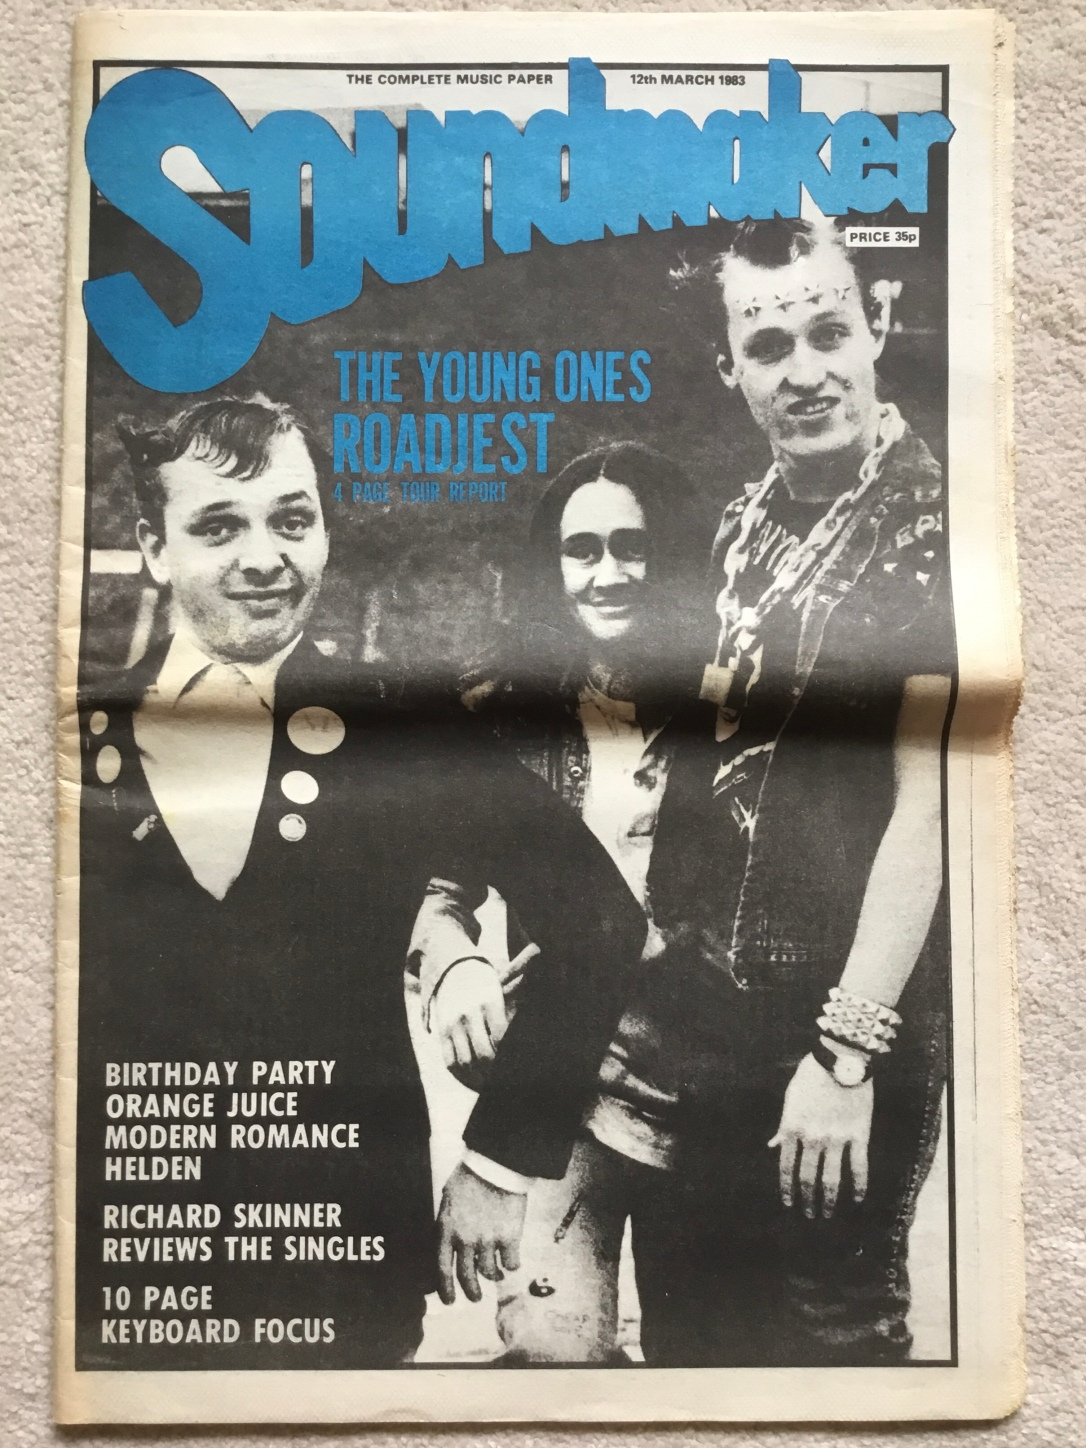 Magazine Covers, Soundmaker, 12th March 1983.